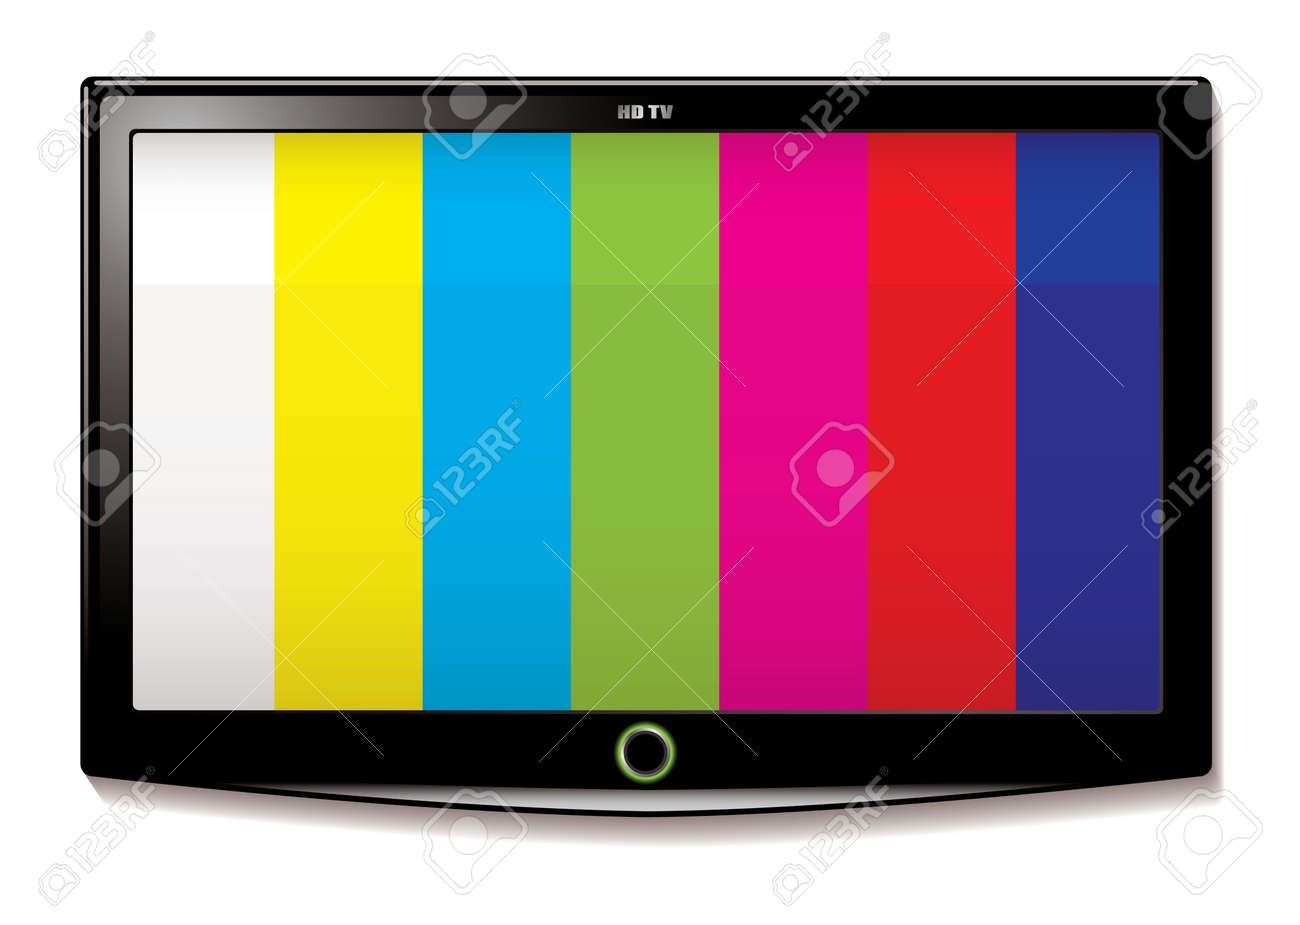 Stripe test screen on modern LCD television mounted on wall - 14053707